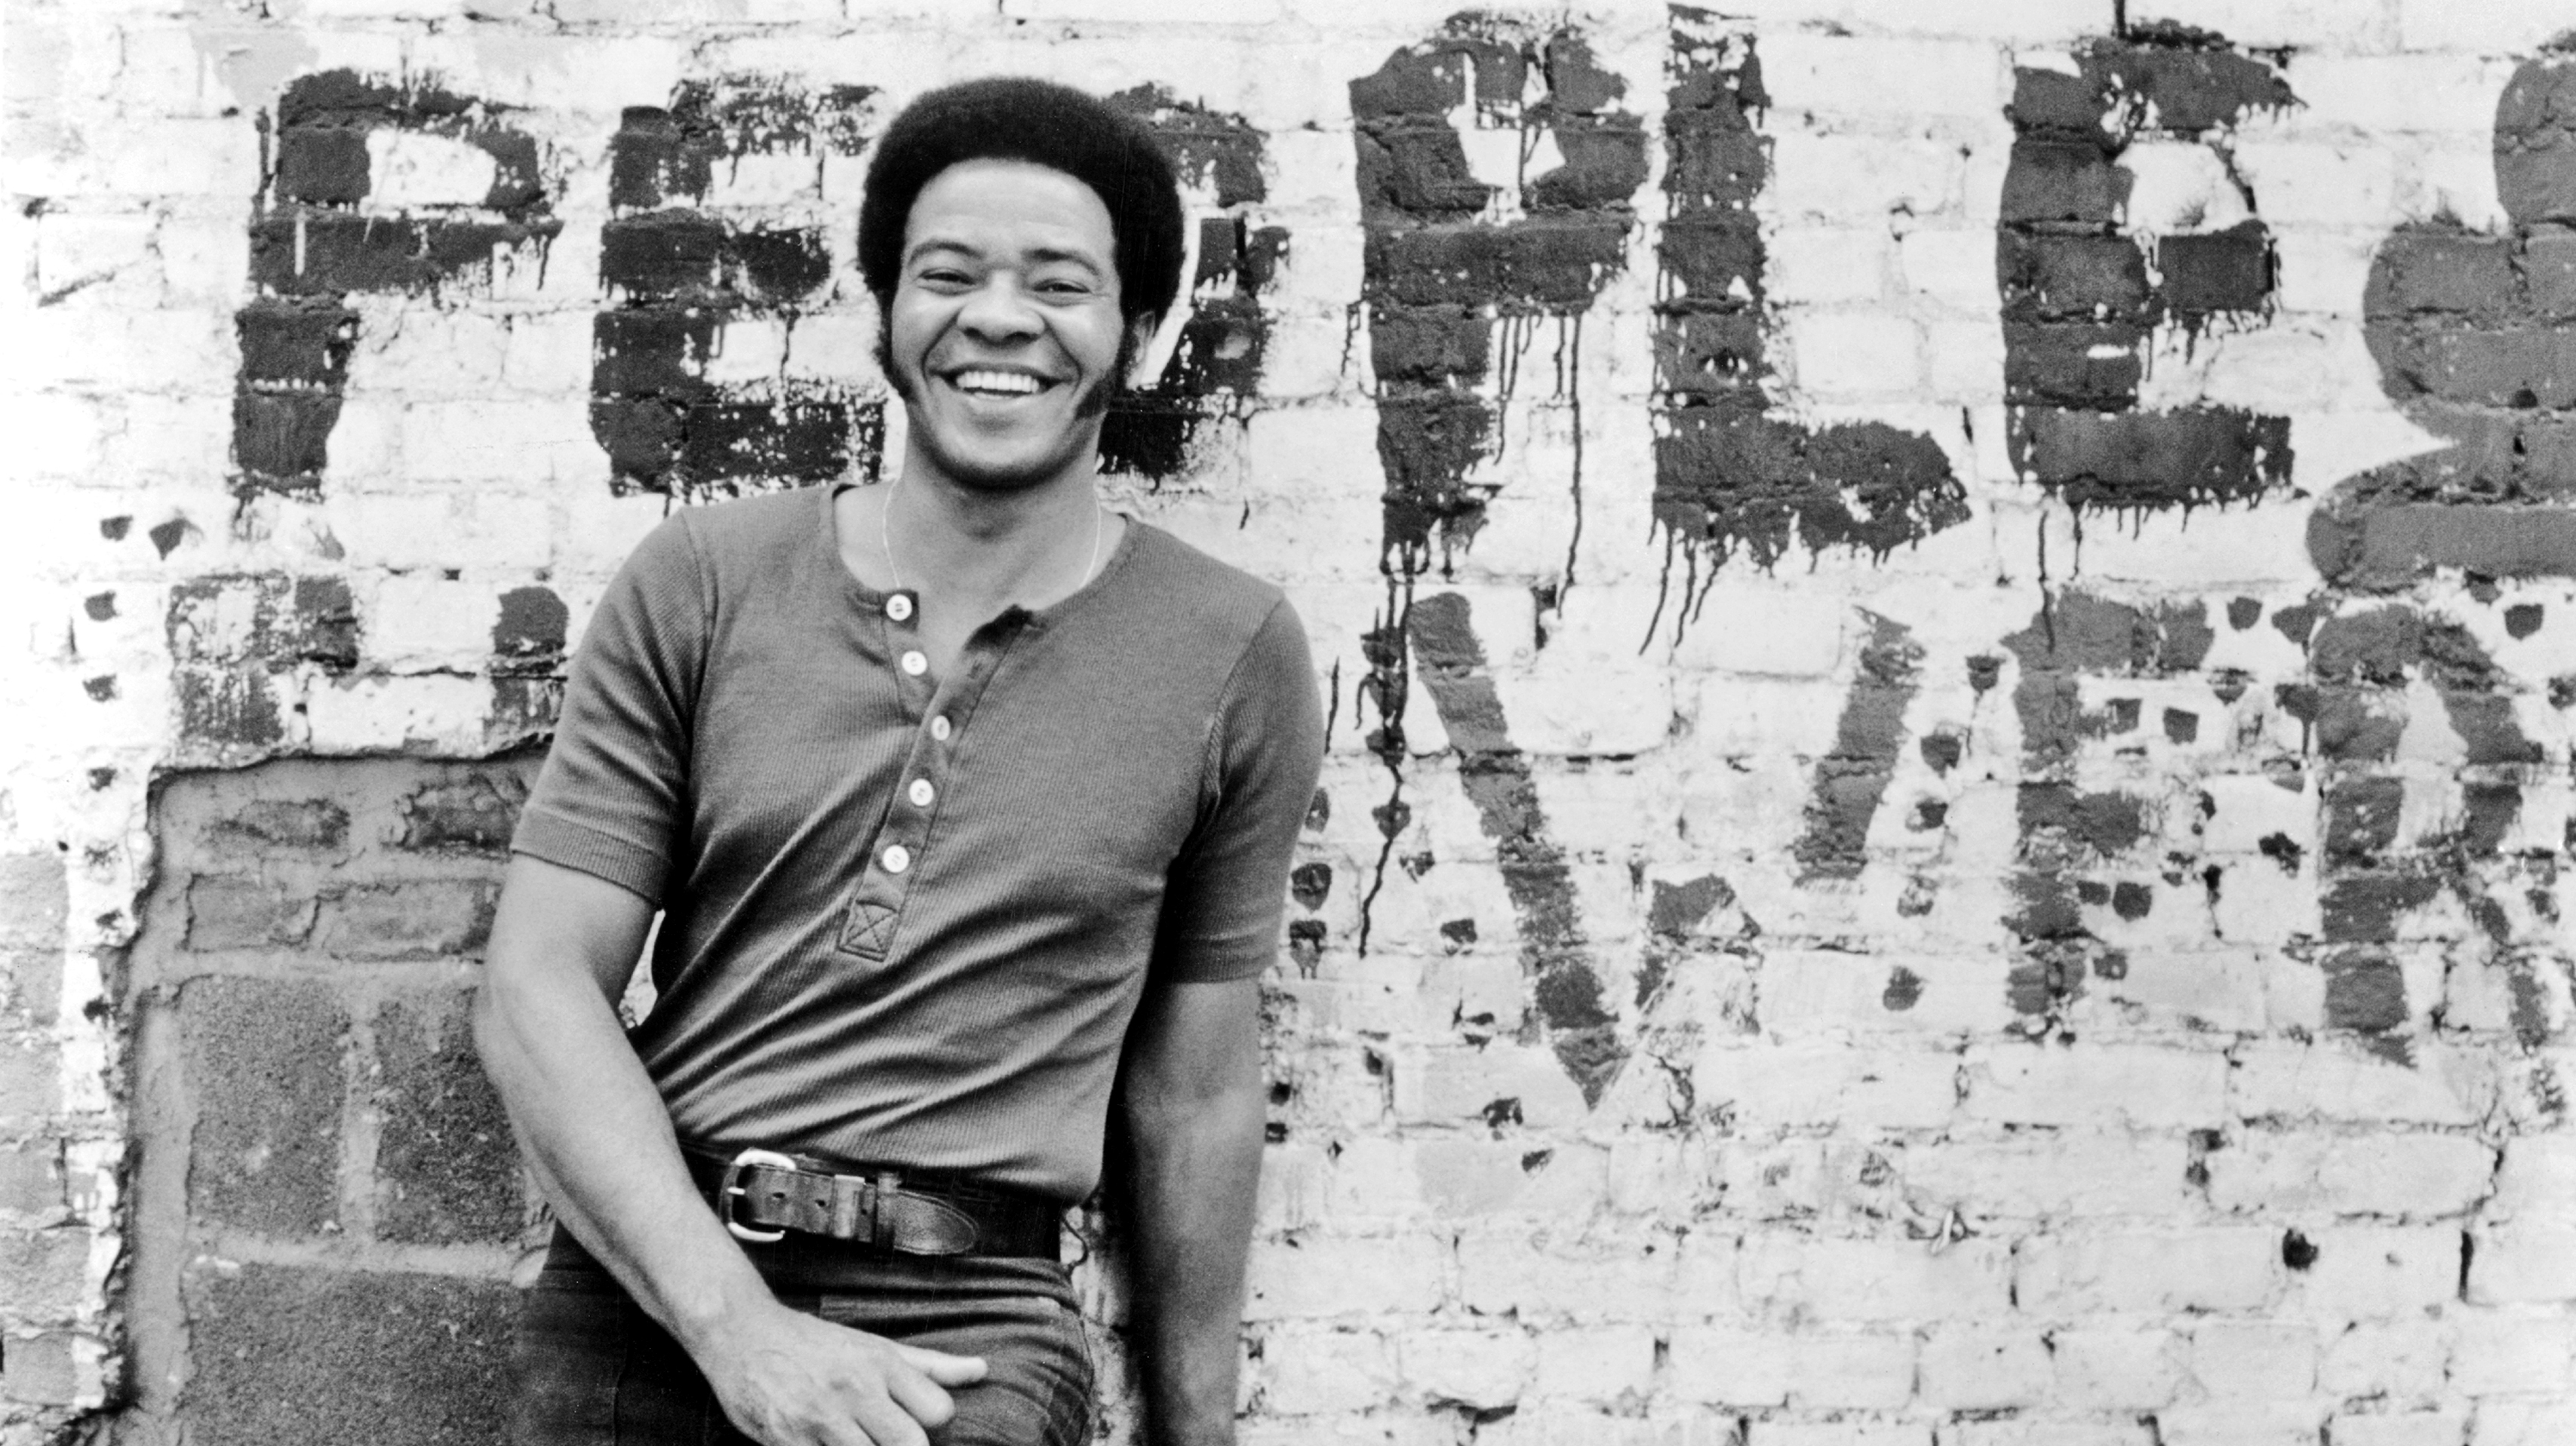 Fallece el músico de soul Bill Withers